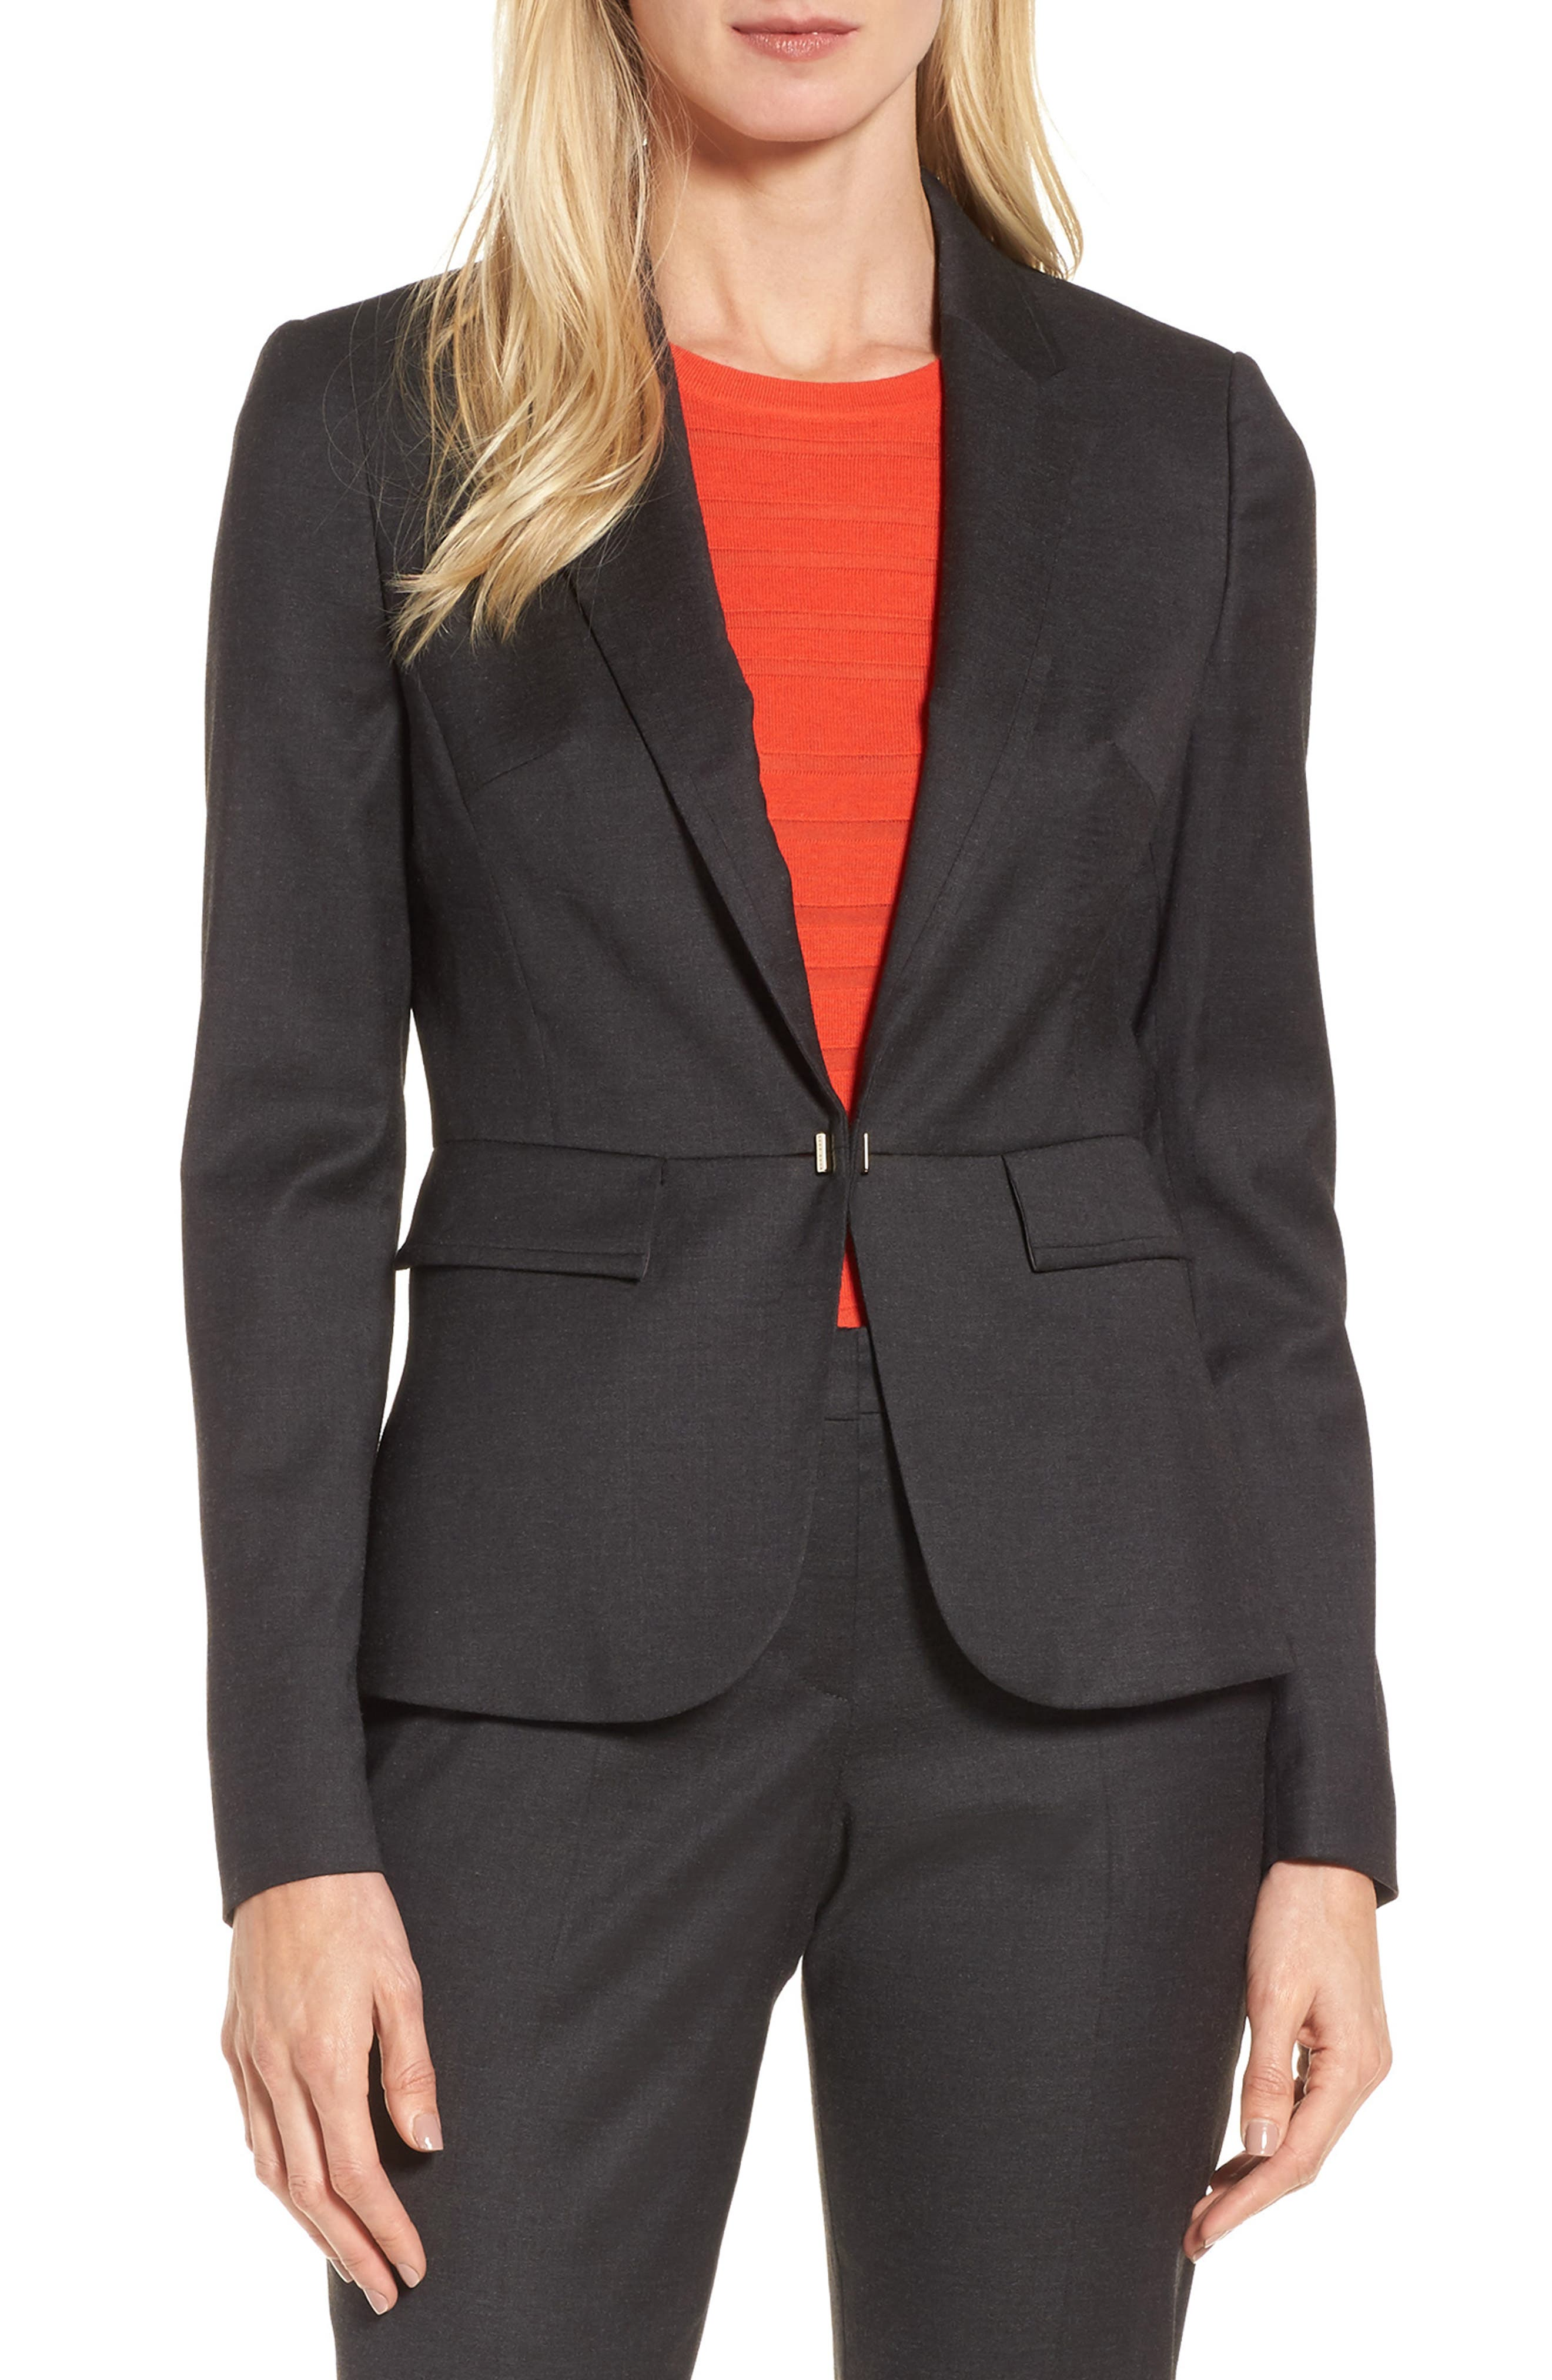 BOSS Jafilia Wool Blend Suit Jacket